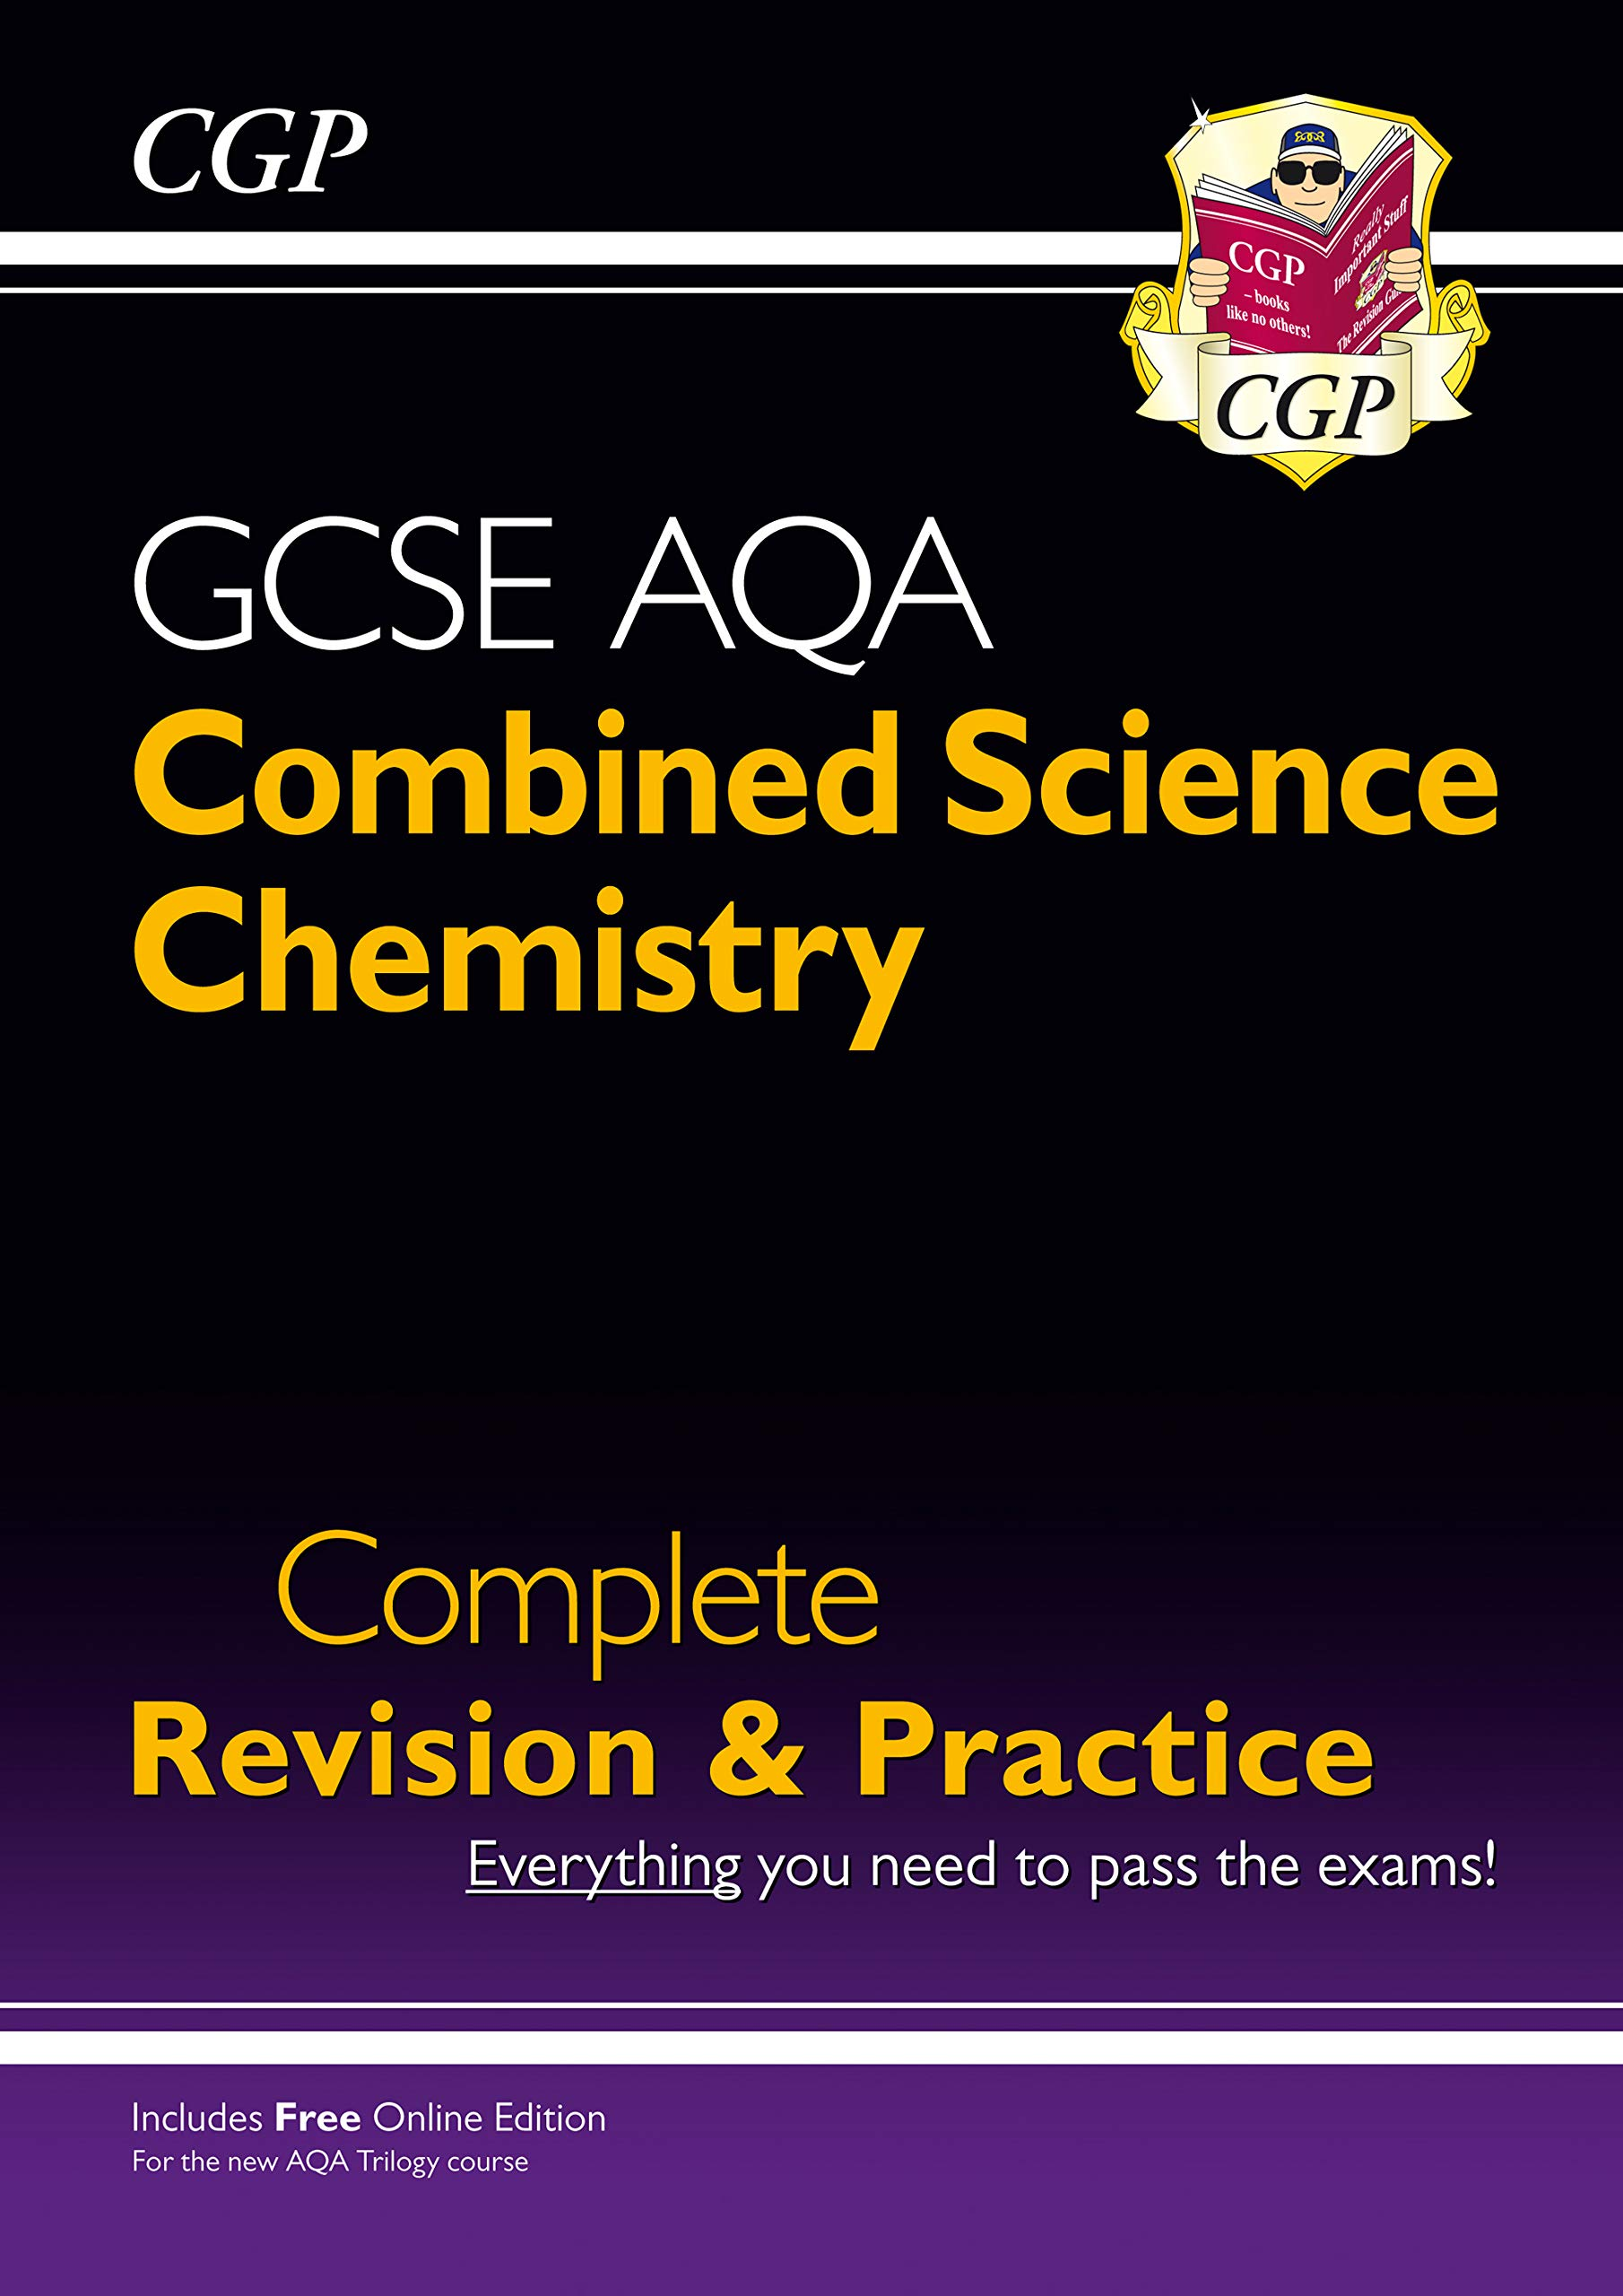 New 9 1 gcse combined science chemistry aqa higher complete new 9 1 gcse combined science chemistry aqa higher complete revision practice with online edition cgp gcse combined science 9 1 revision amazon urtaz Gallery